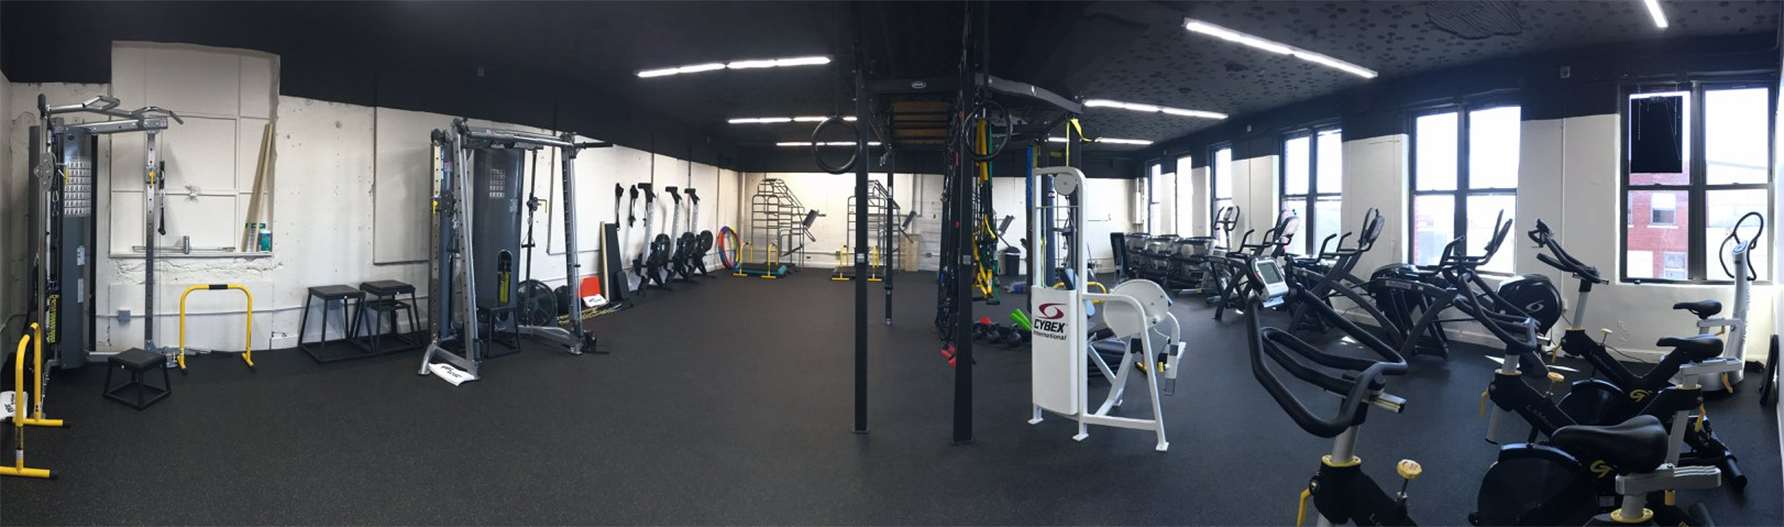 pfitz-downtown-toledo-gym